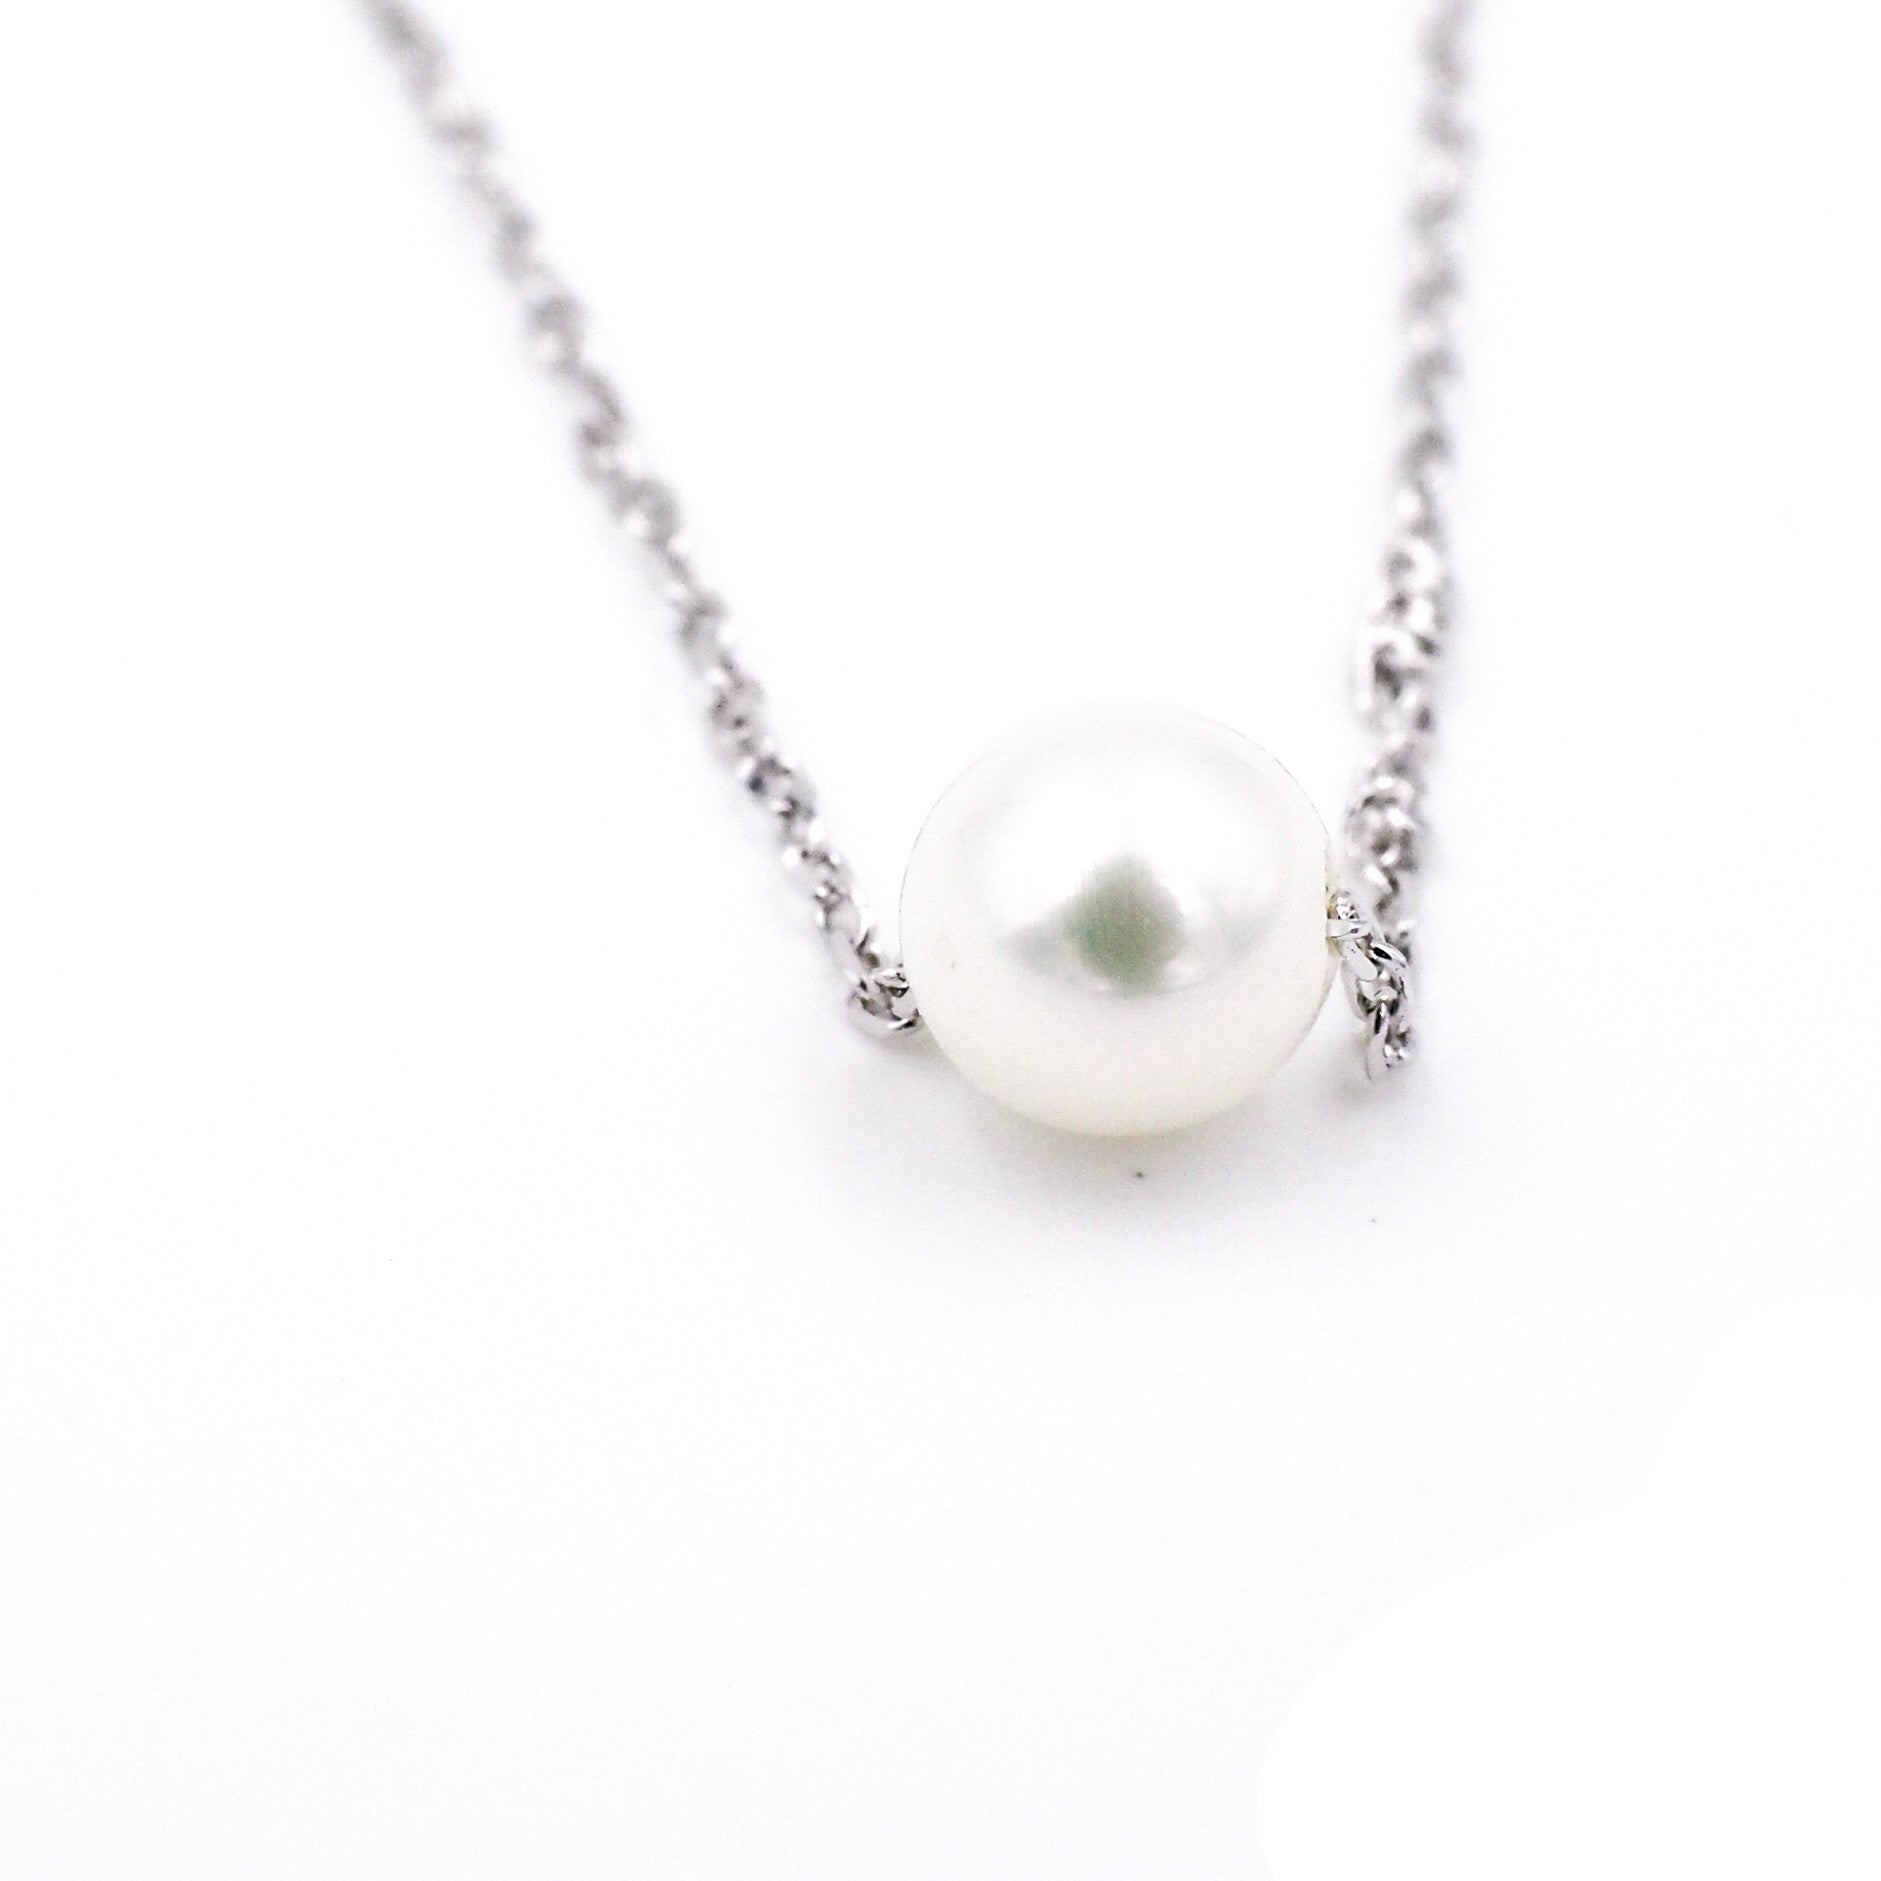 cosa handmade single product season jewelry at brown sm bella the tis tyler store pearl necklace